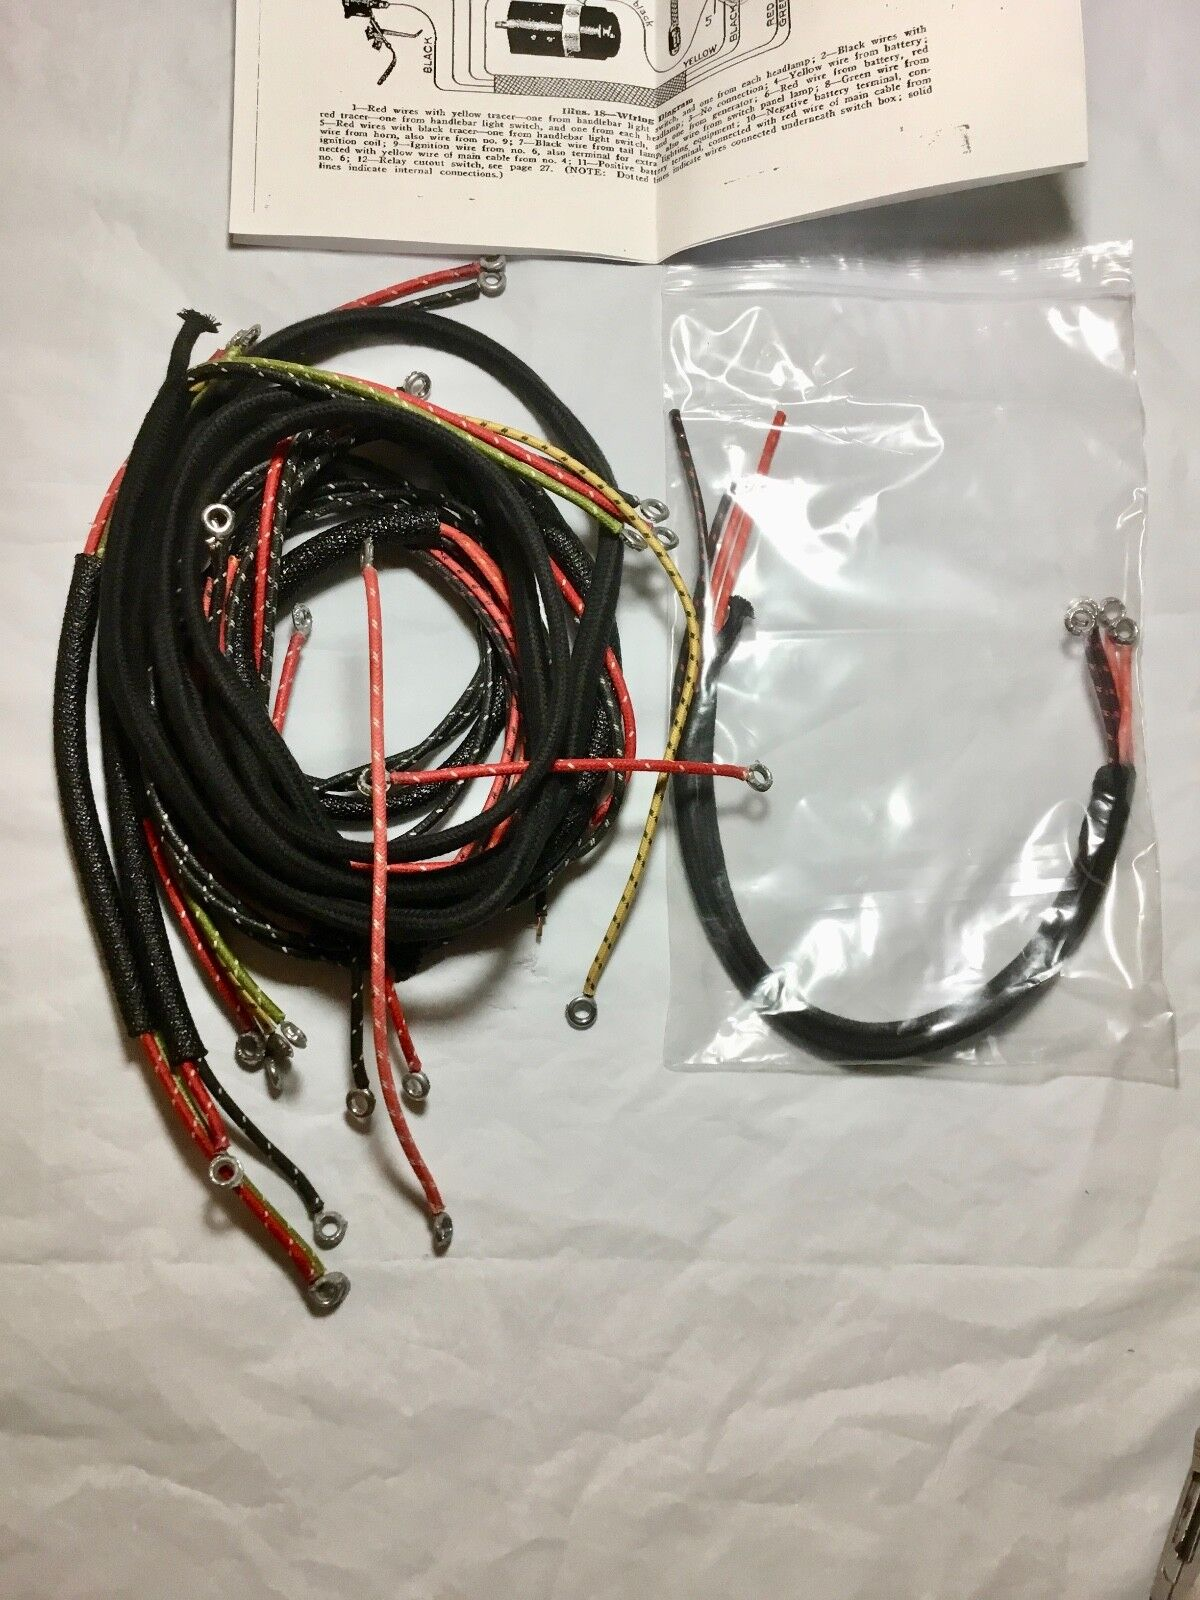 Harley 1930 VL DL Wiring Harness Kit w/ Correct Soldered Ends Dual on